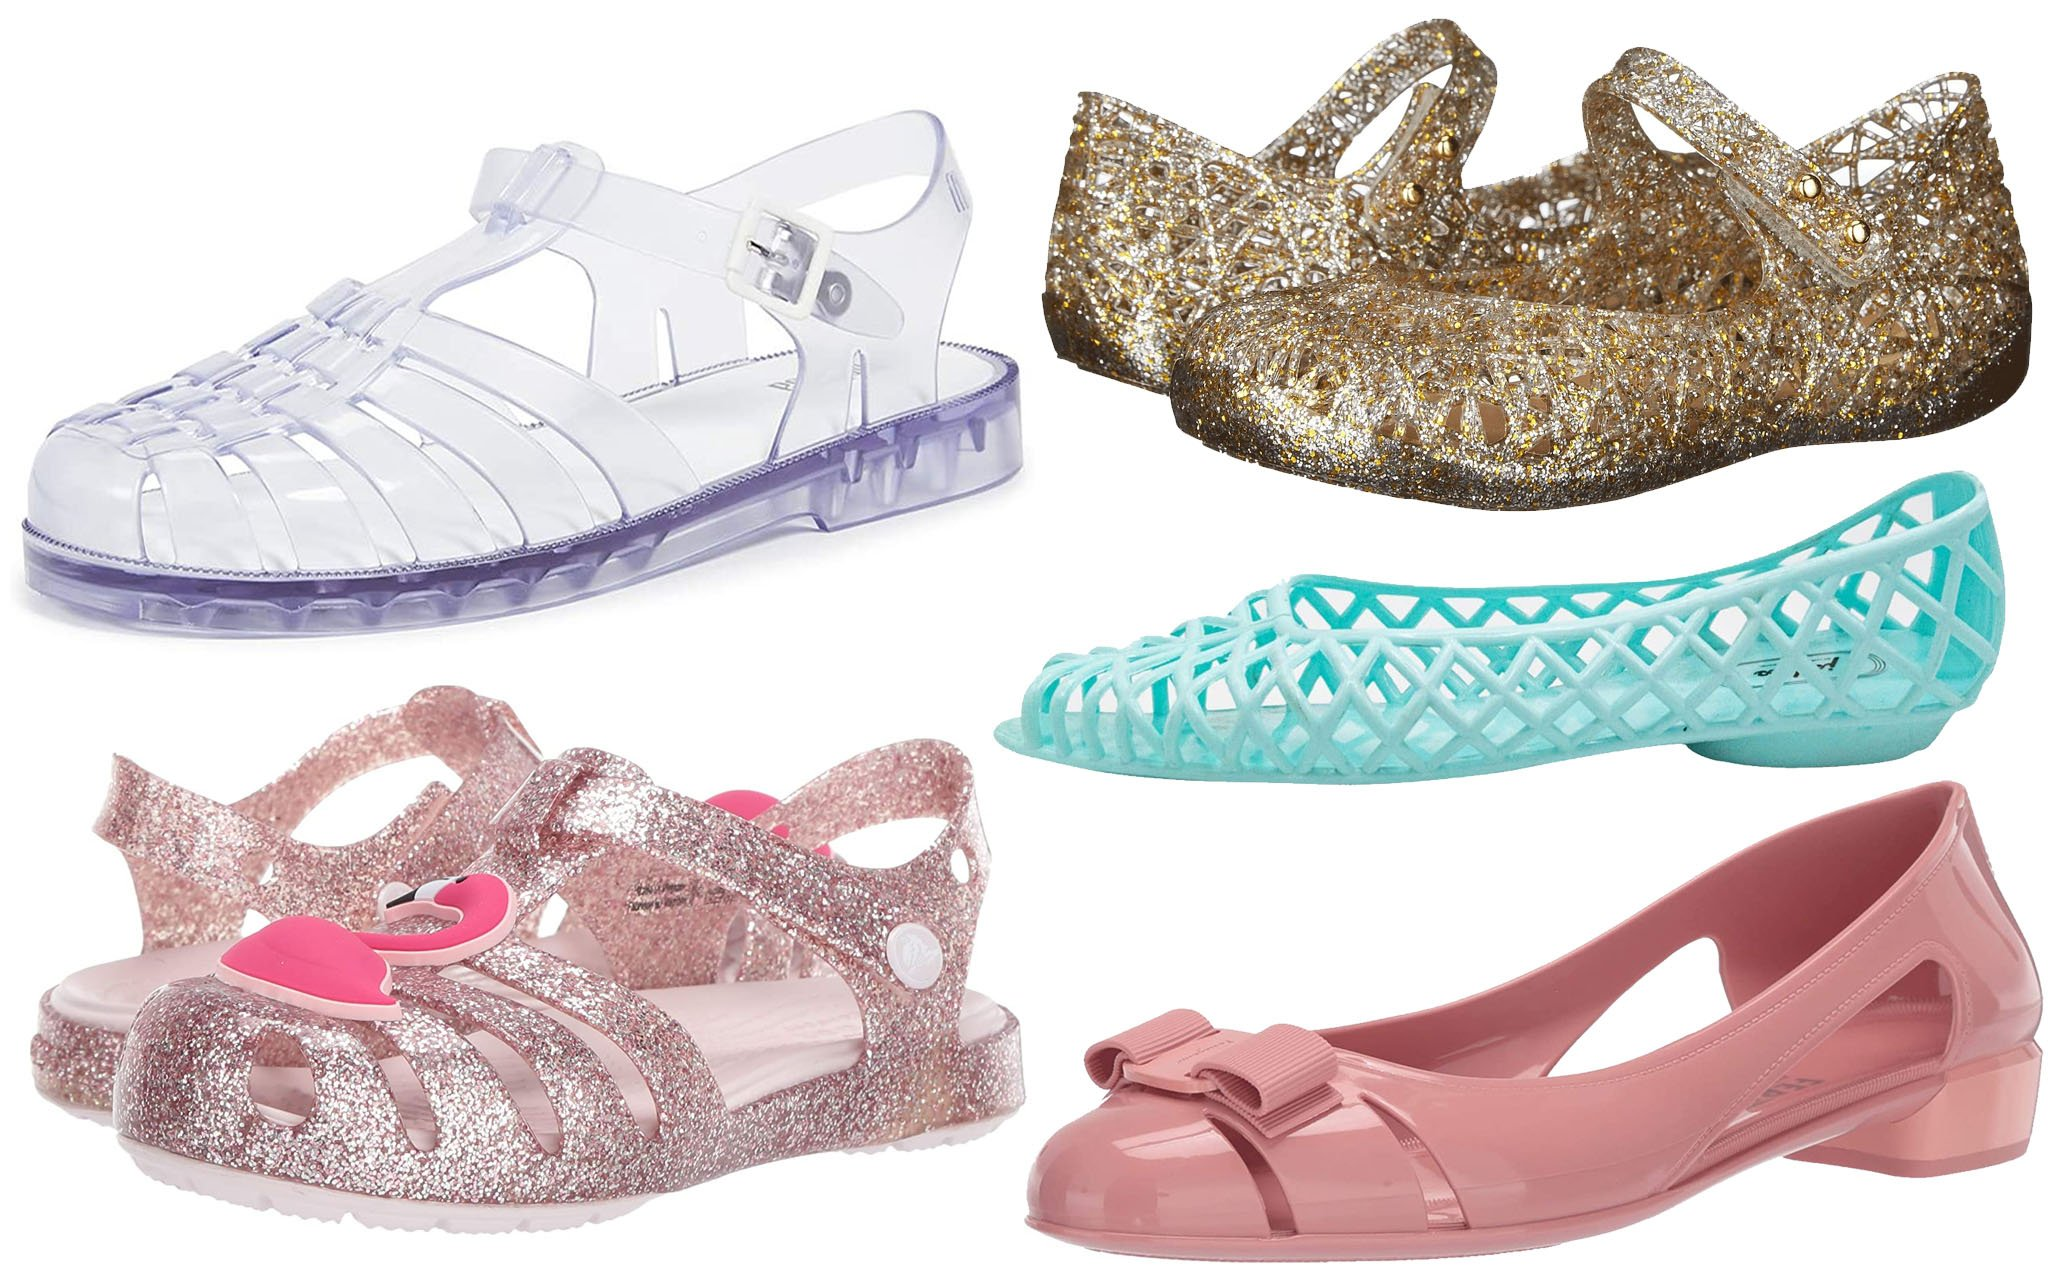 Stylish, cute, and waterproof jelly shoes for women and kids